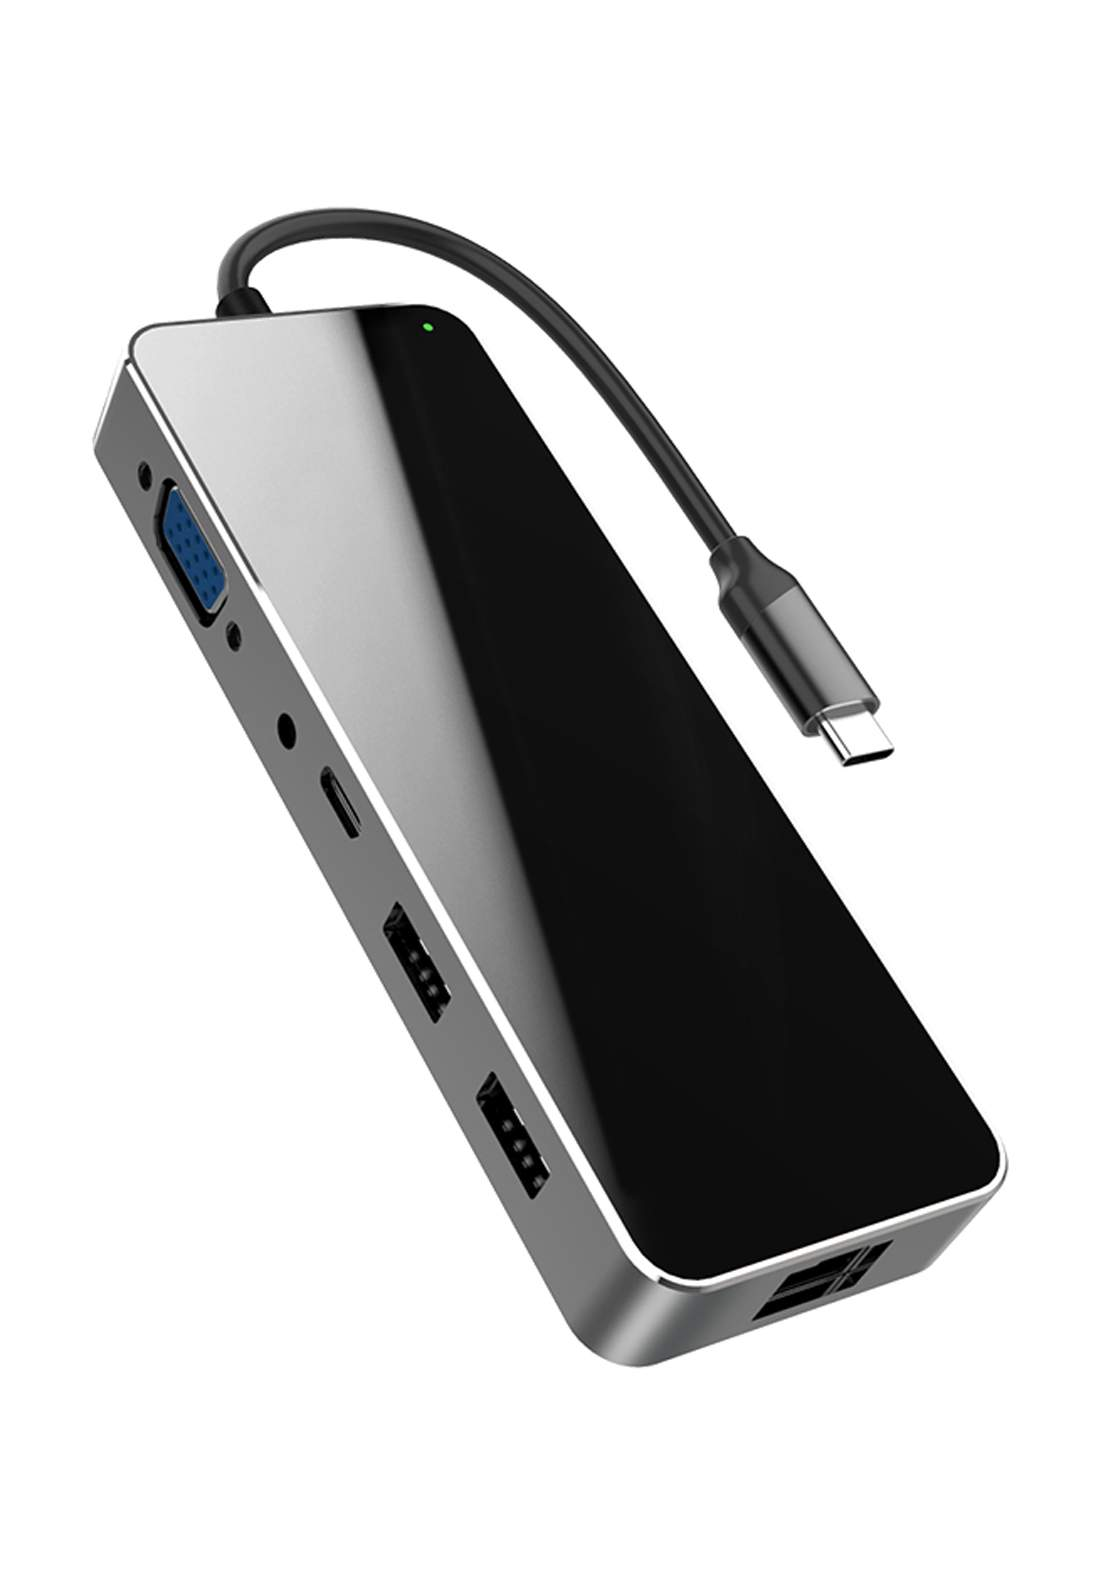 Newdery XDL-HC04 11 in 1 USB-C Multiport Adapter